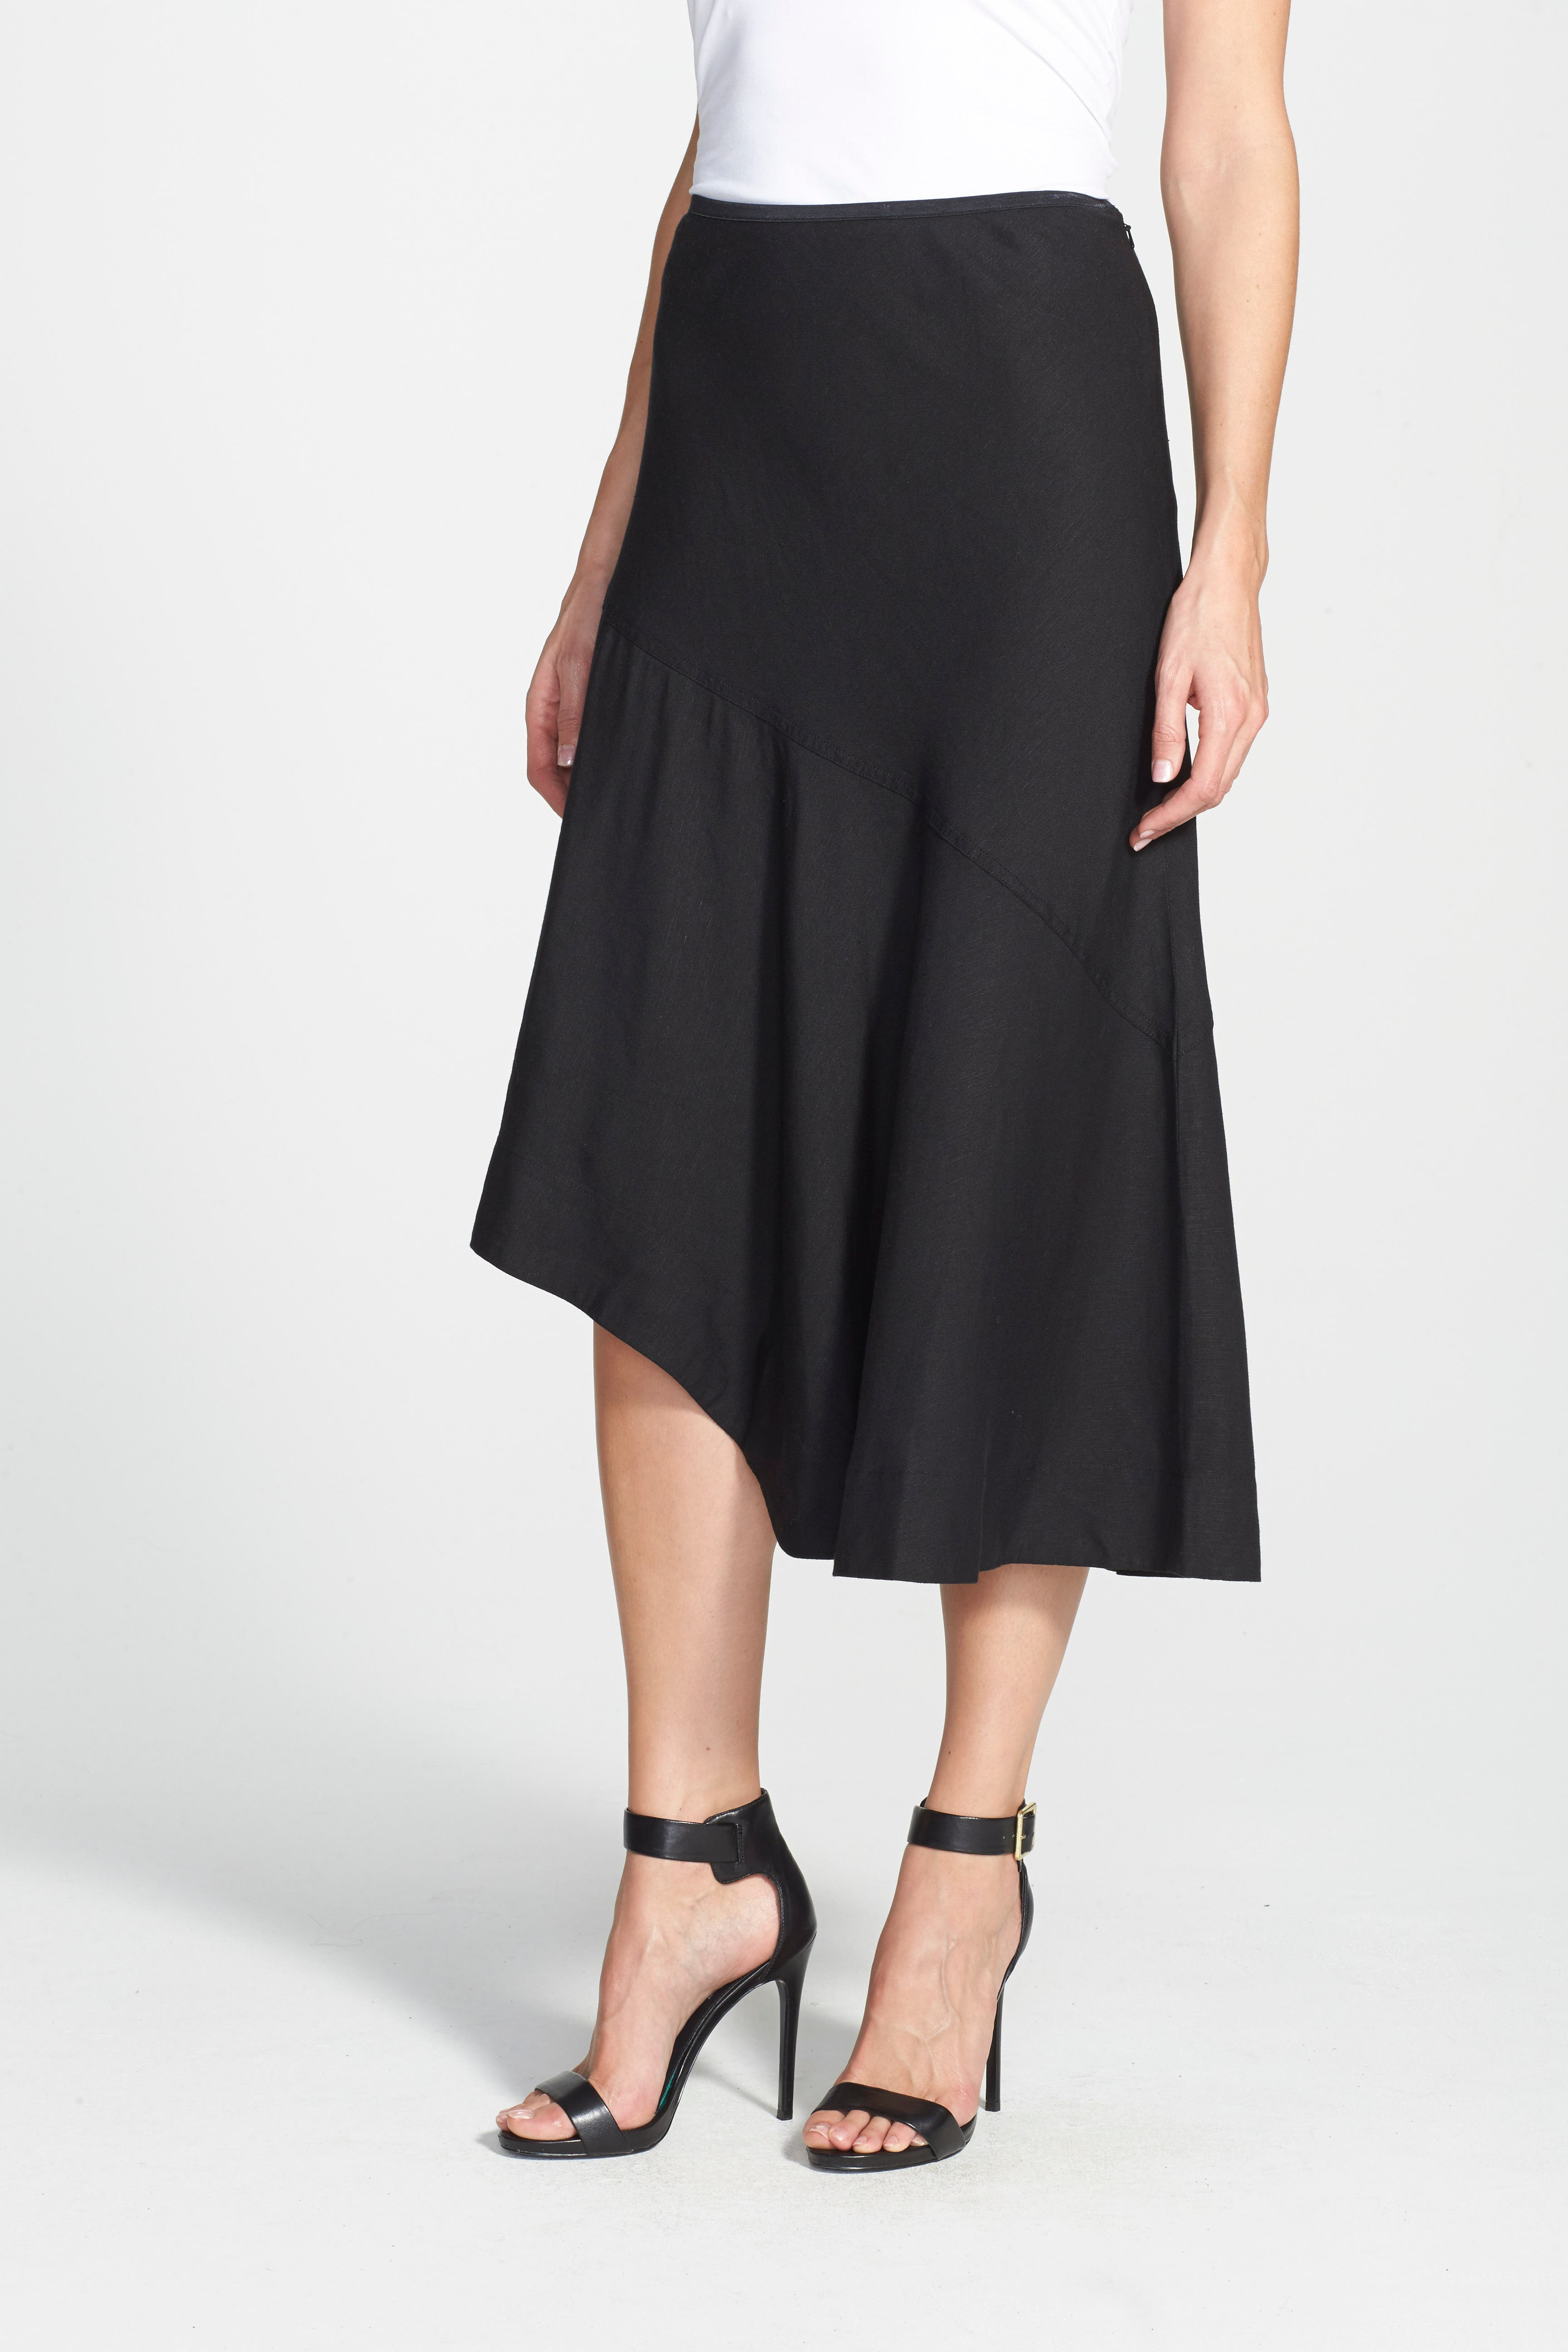 NIC+ZOE, 'The Long Engagement' Midi Skirt, Alternate thumbnail 6, color, 004